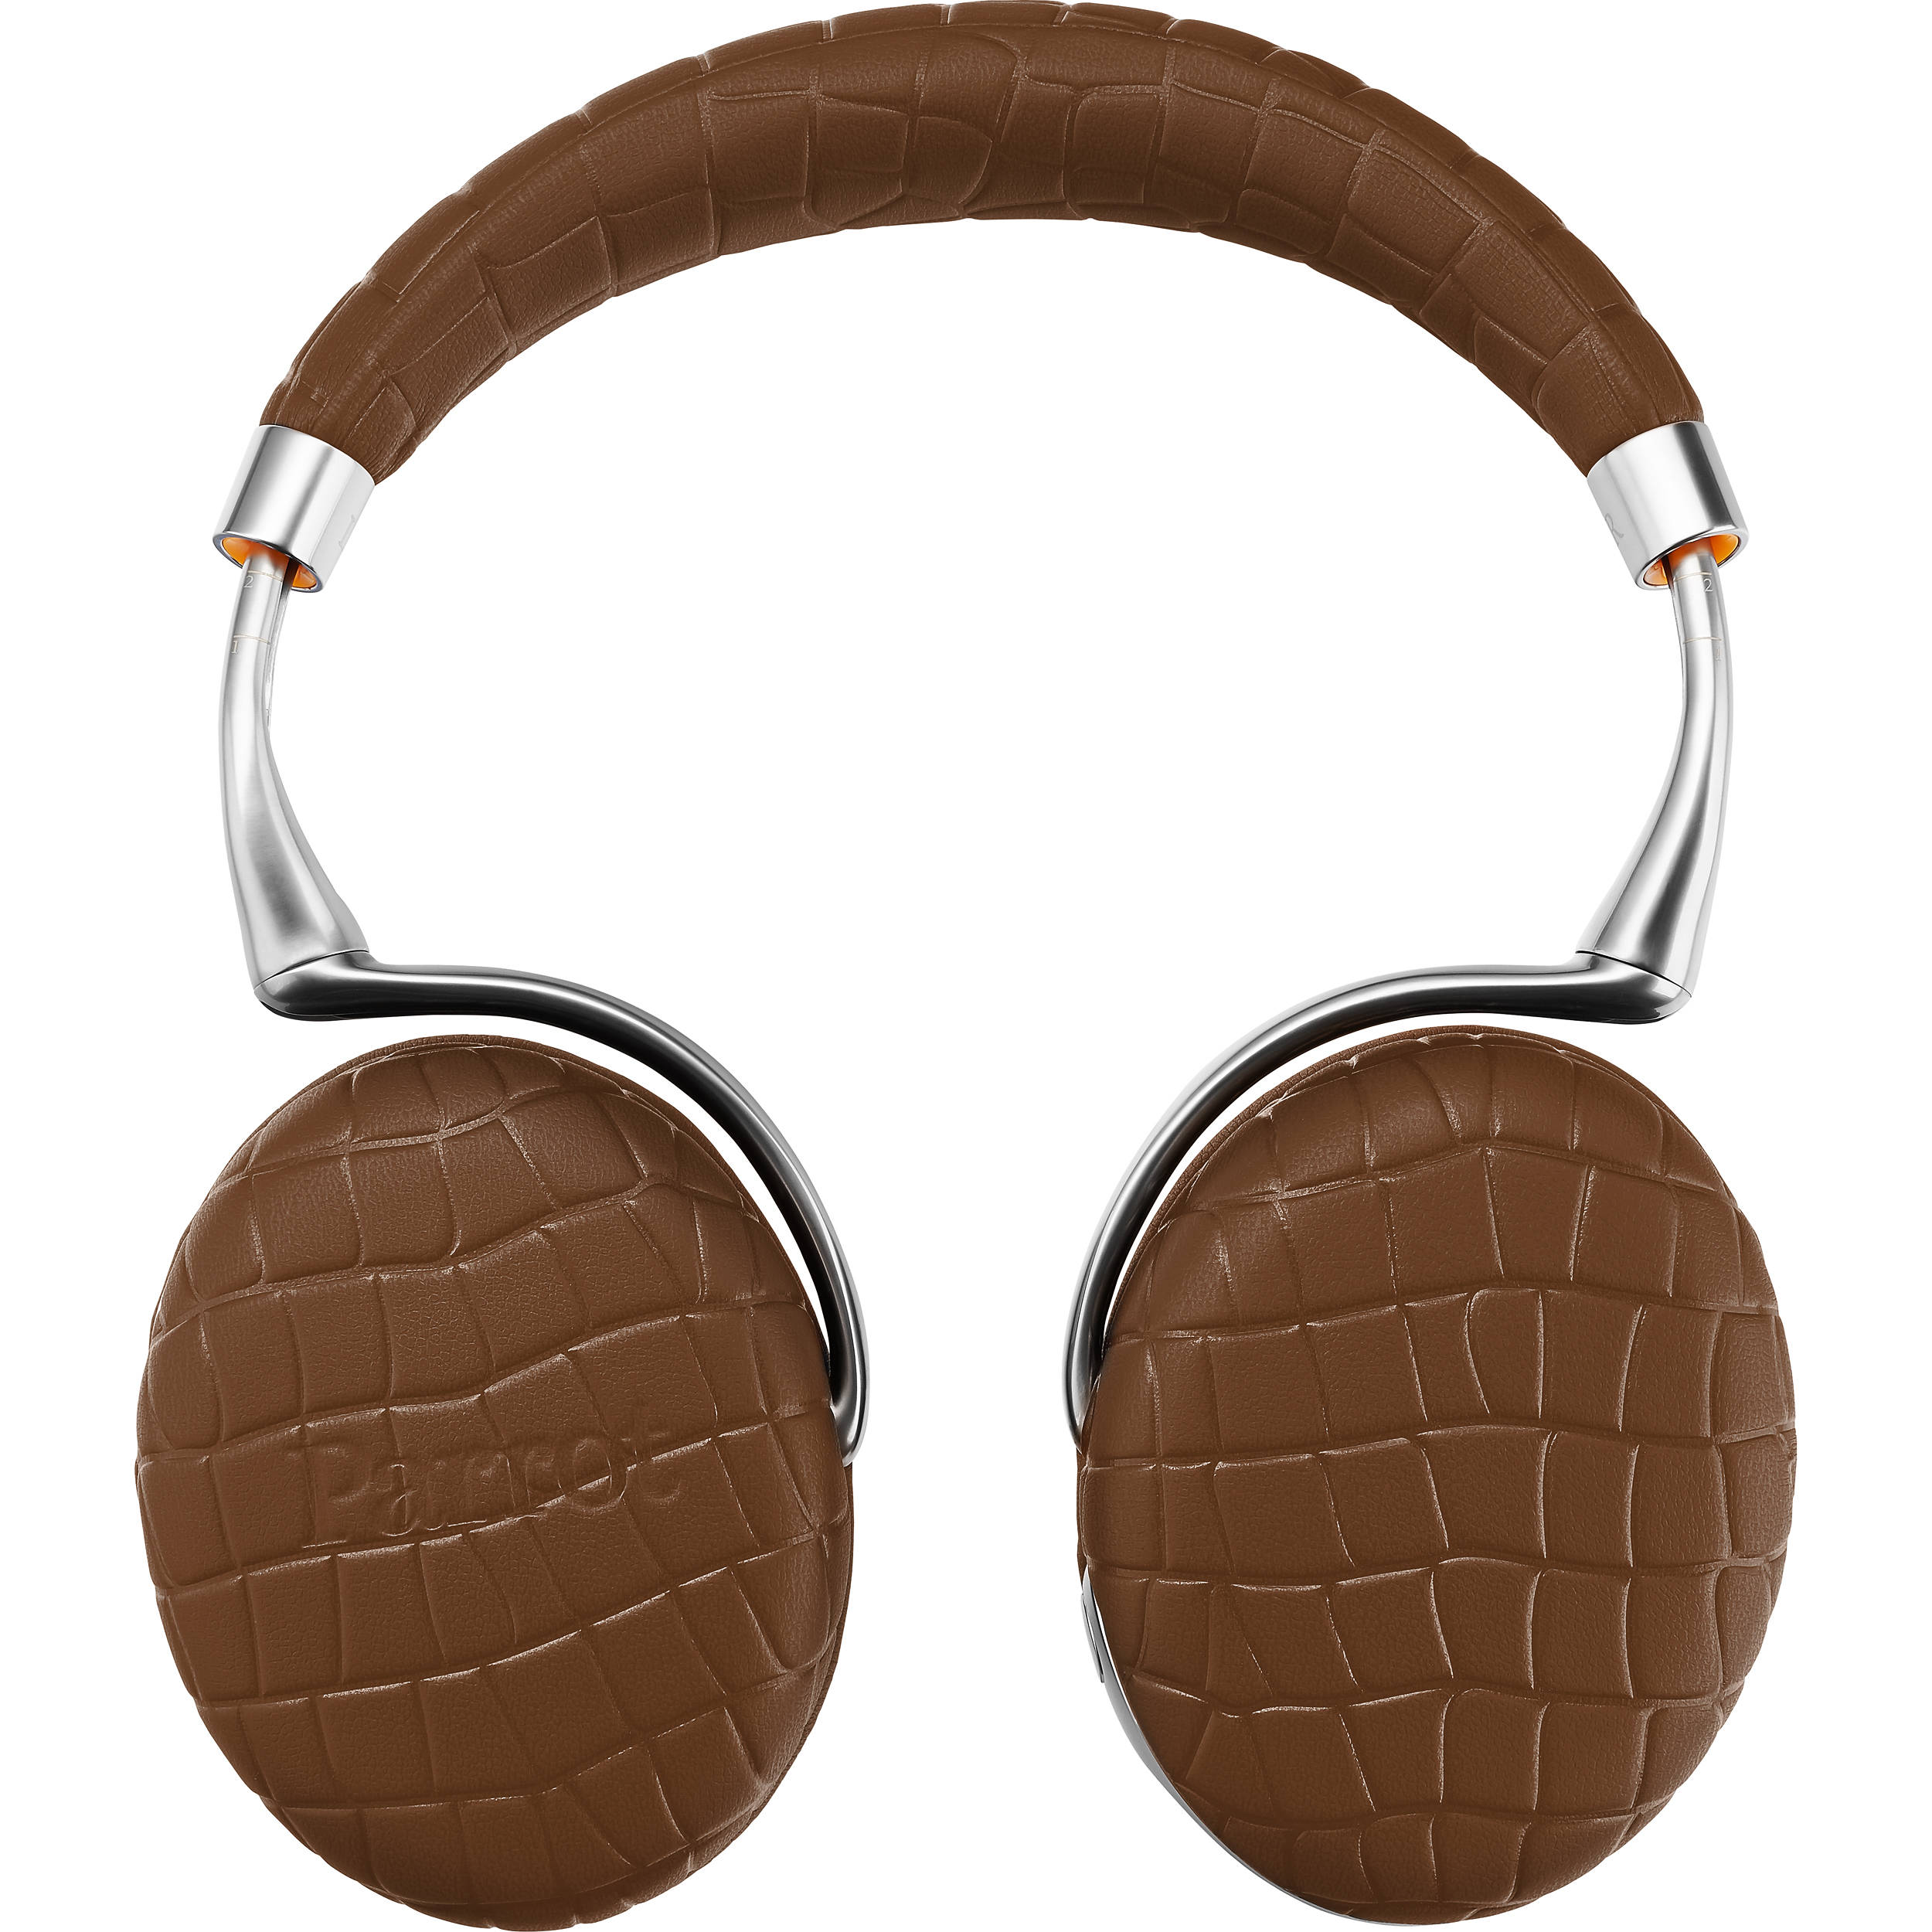 5f25dc32f63 Parrot Zik 3.0 Stereo Bluetooth Headphones & Wireless Charger (Brown, Croc)